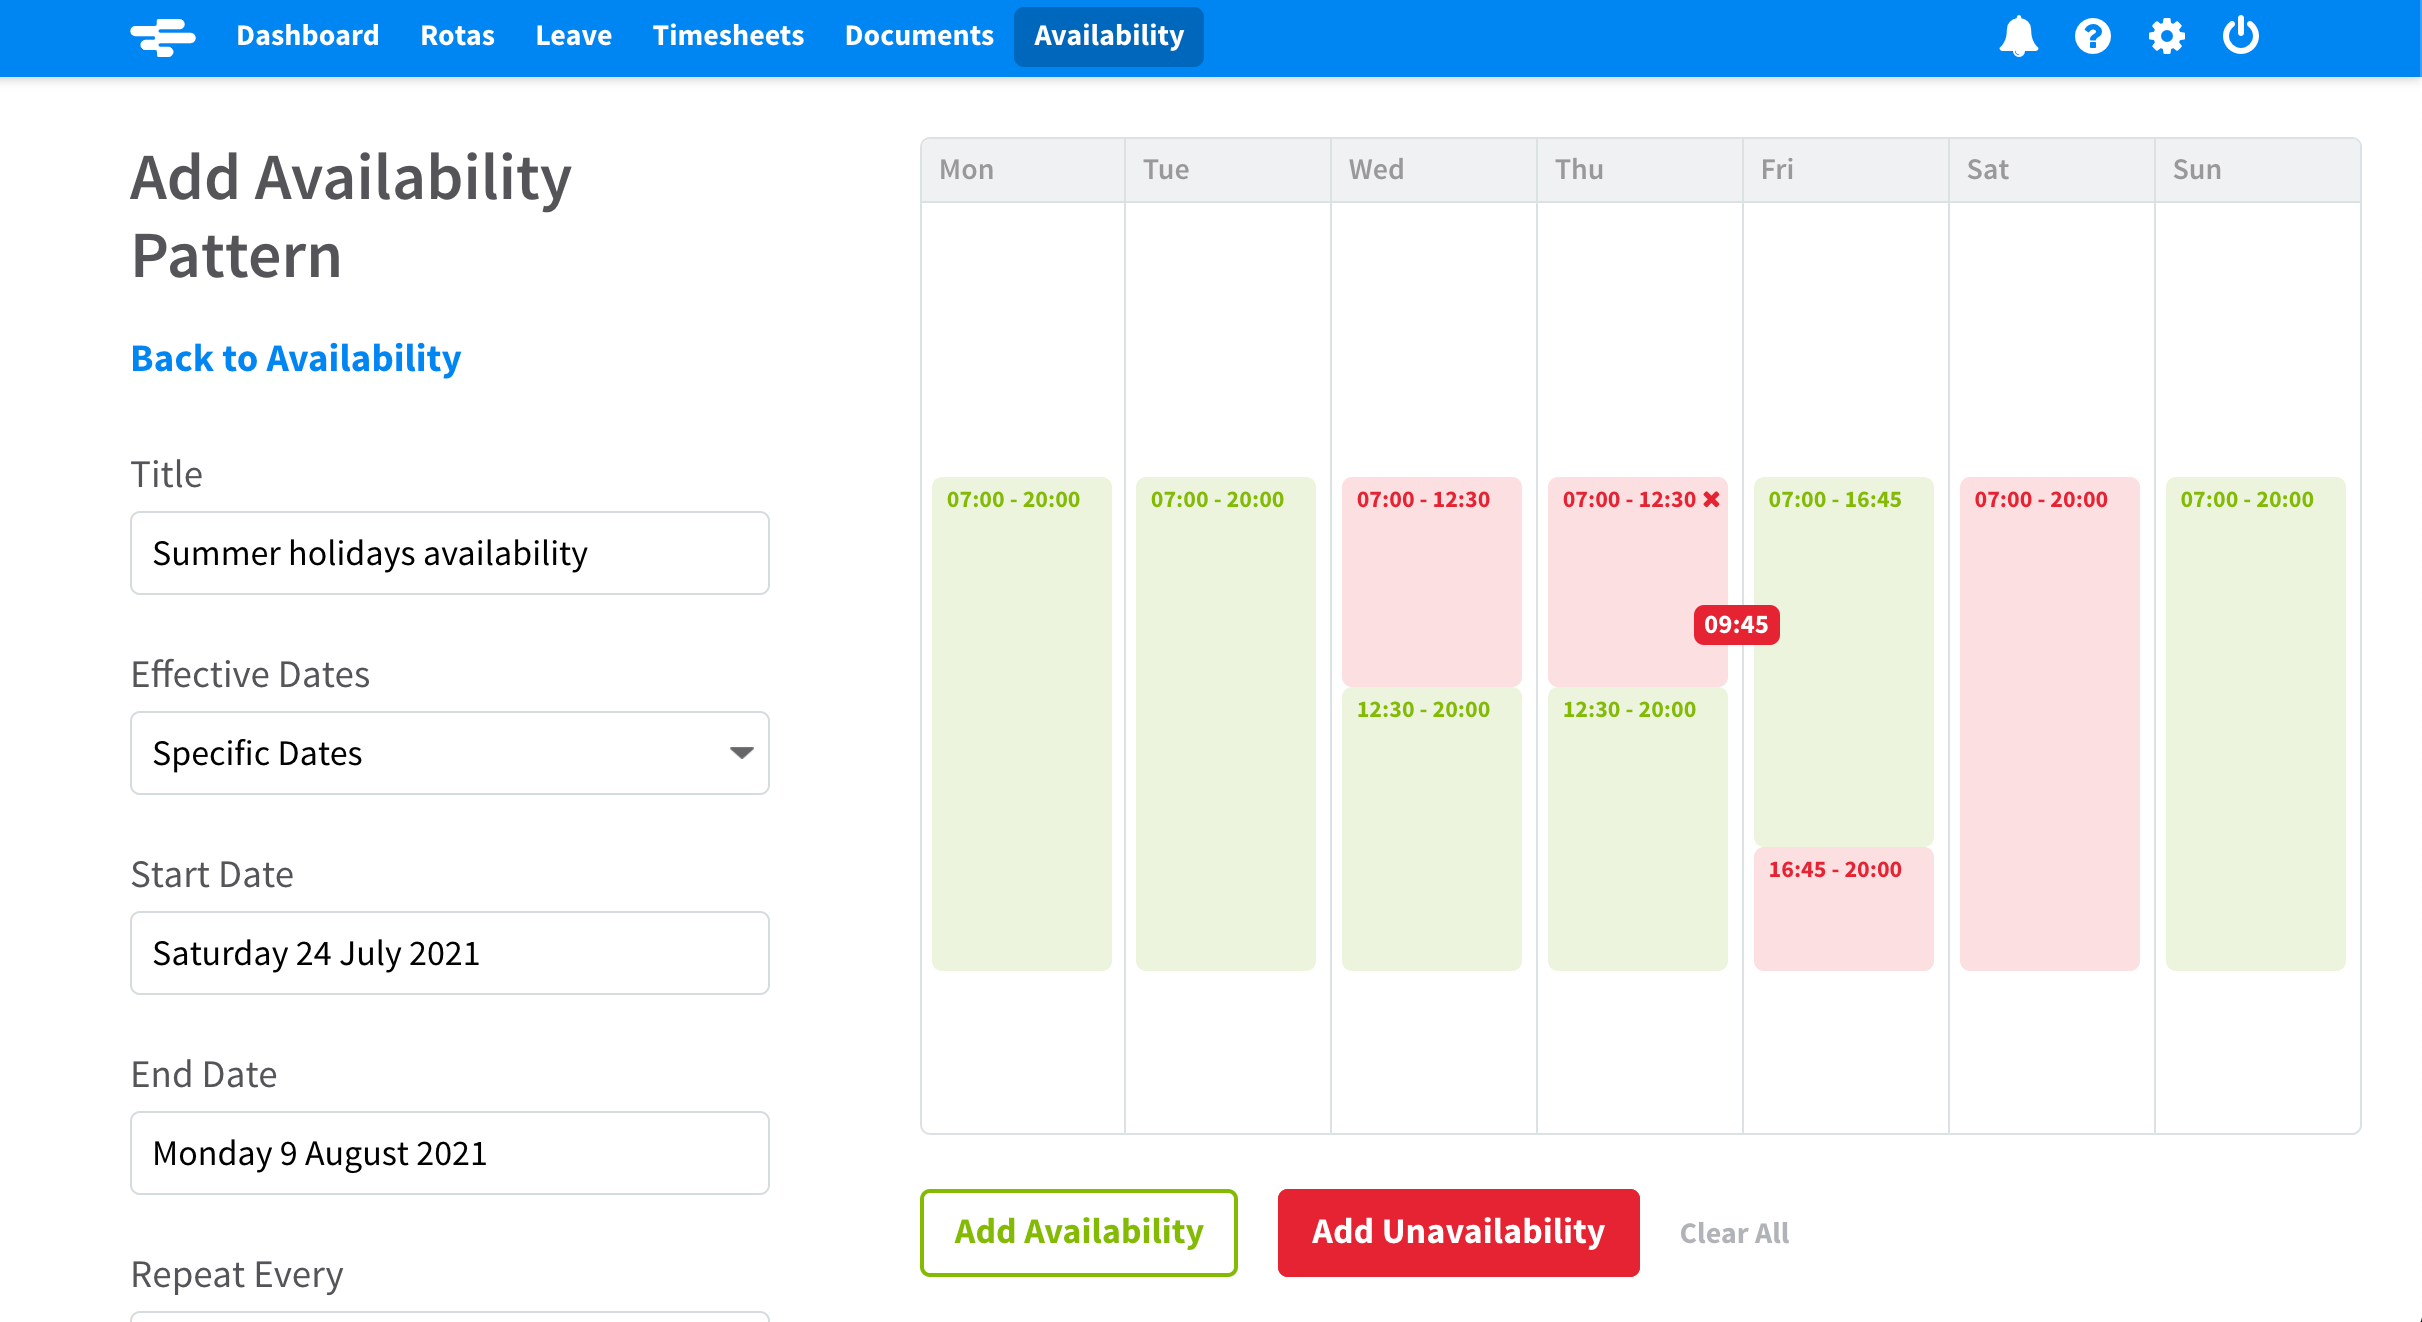 Screenshot of RotaCloud staff scheduling software with employee marking their availability in green and unavailability in red